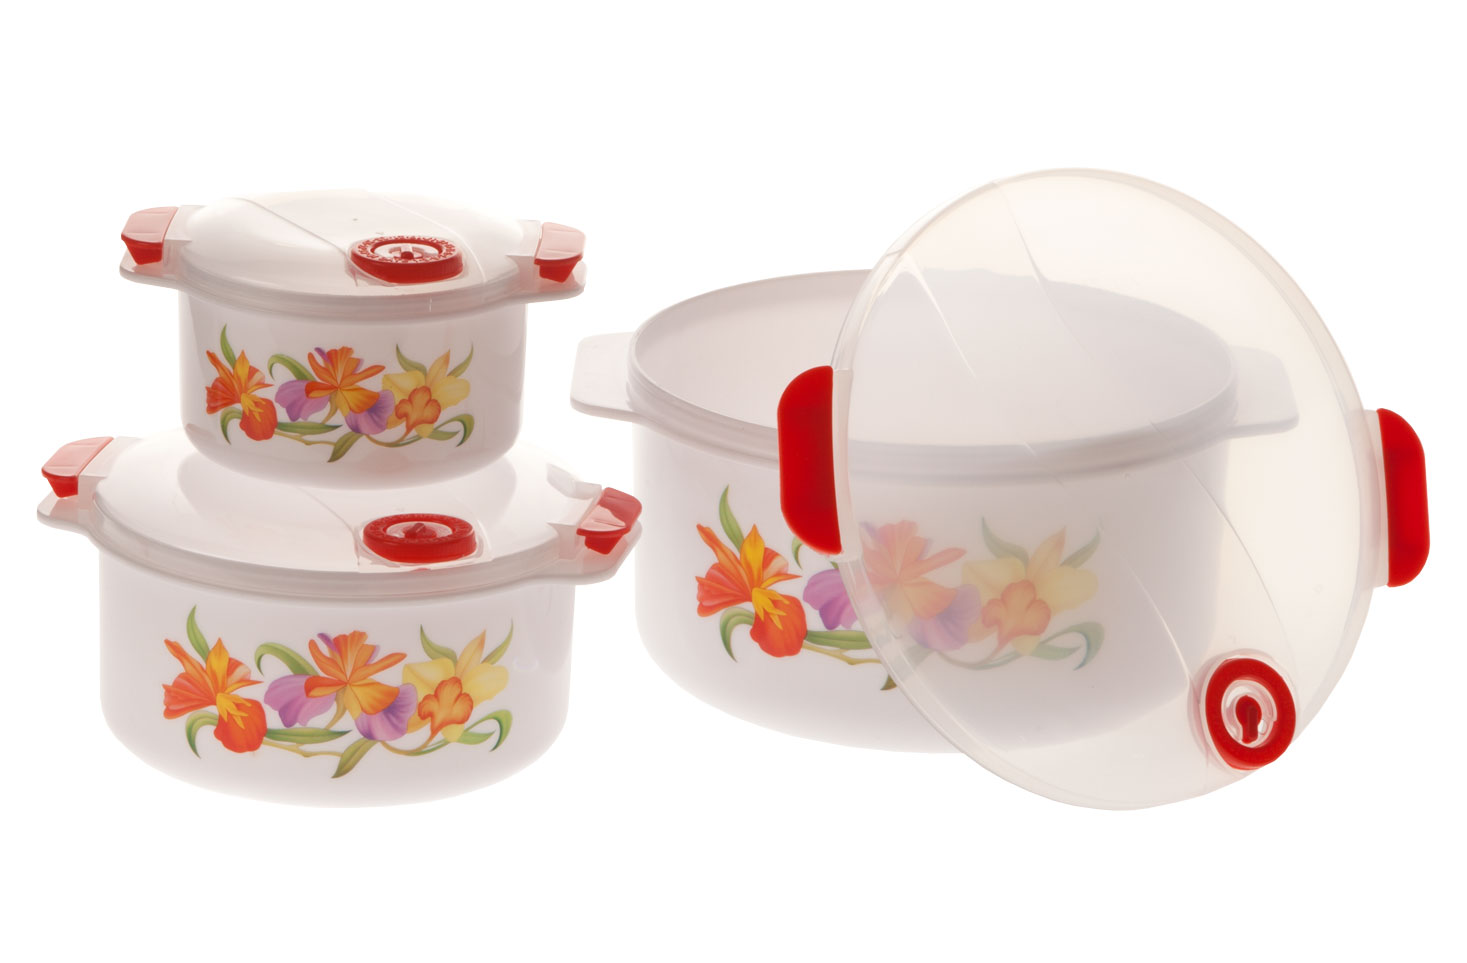 Floral Microwave Pot Set Floral microwave pot set beautifully handles cooking and storage. Lids have steam-release valves for splatter-free microwave cooking. Convenient date dials make it easy to keep track of how long foods are refrigerated. Dishwasher-safe, durable plastic microwave safe dishes makes cleanup easy. Set of 6 includes 3 sizes with lids: 8 cup, 4 cup and 1 1/2 cup.